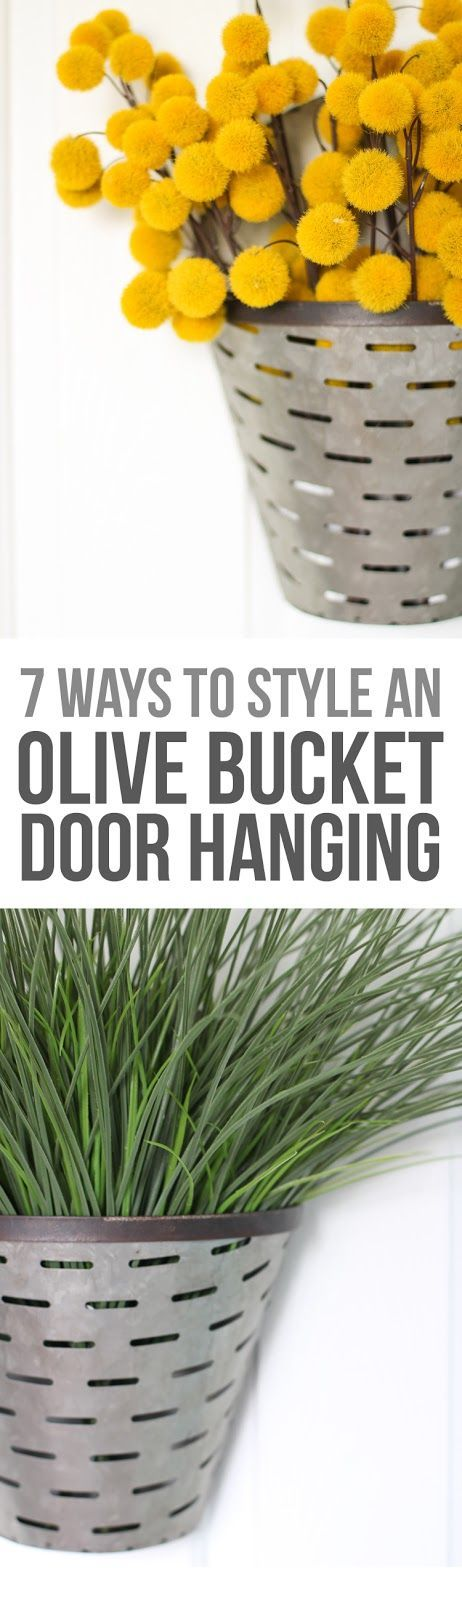 A simple fall wreath idea with farmhouse style that is easy to switch up all year round! Olive bucket decor ideas | Non-traditional door wreaths | Fall wreath decor ideas